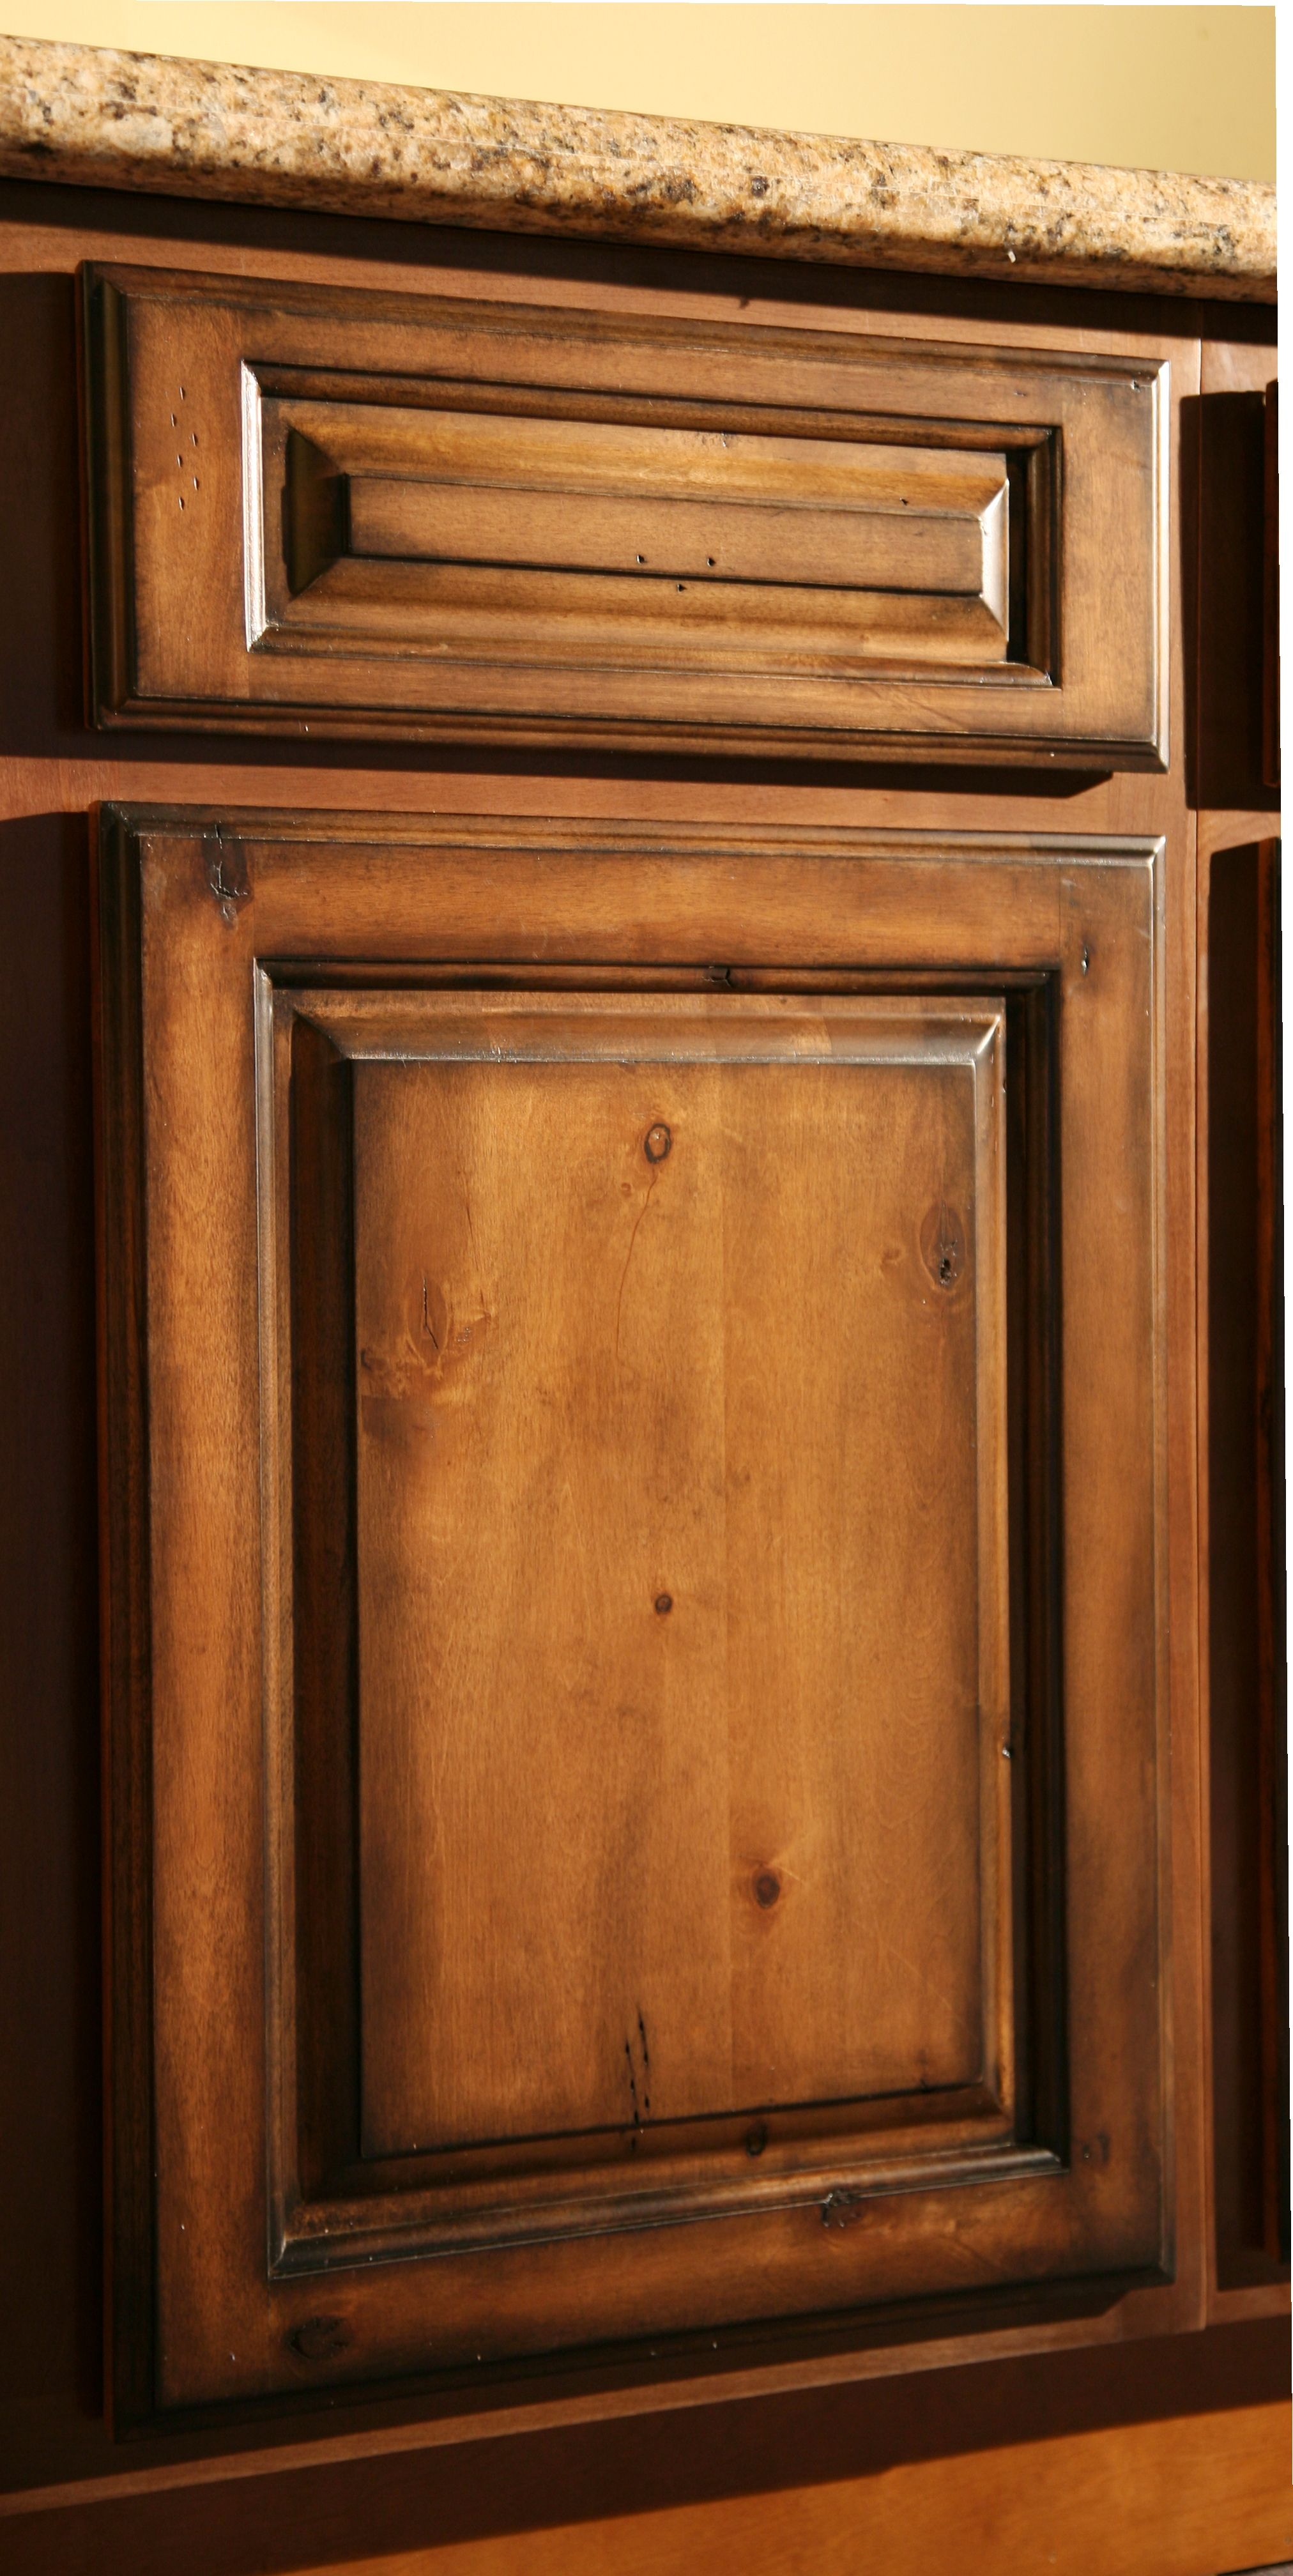 Maple Kitchen Cabinet Doors Pecan Maple Glaze Kitchen Cabinets Rustic Finish Sample Door Rta